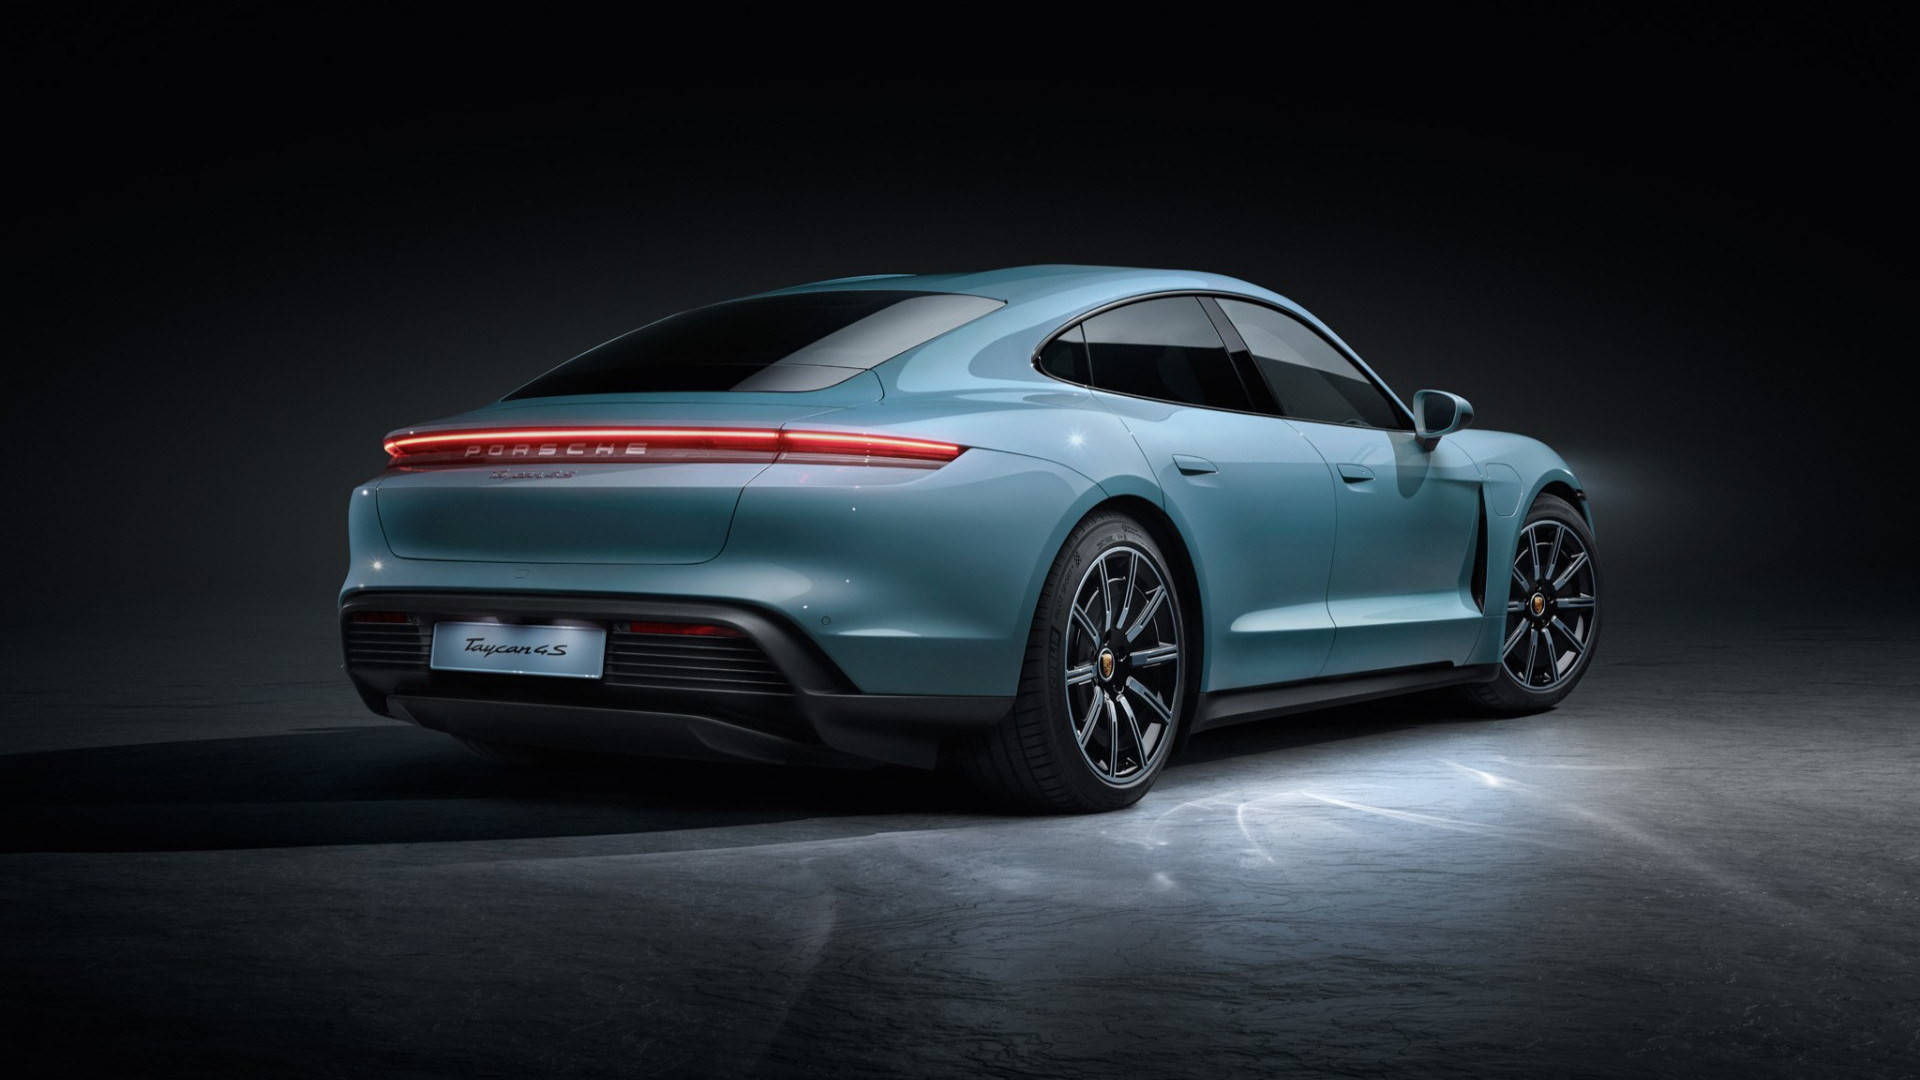 Porsche Taycan Naming Gets More Confusing, Here Comes the 4S